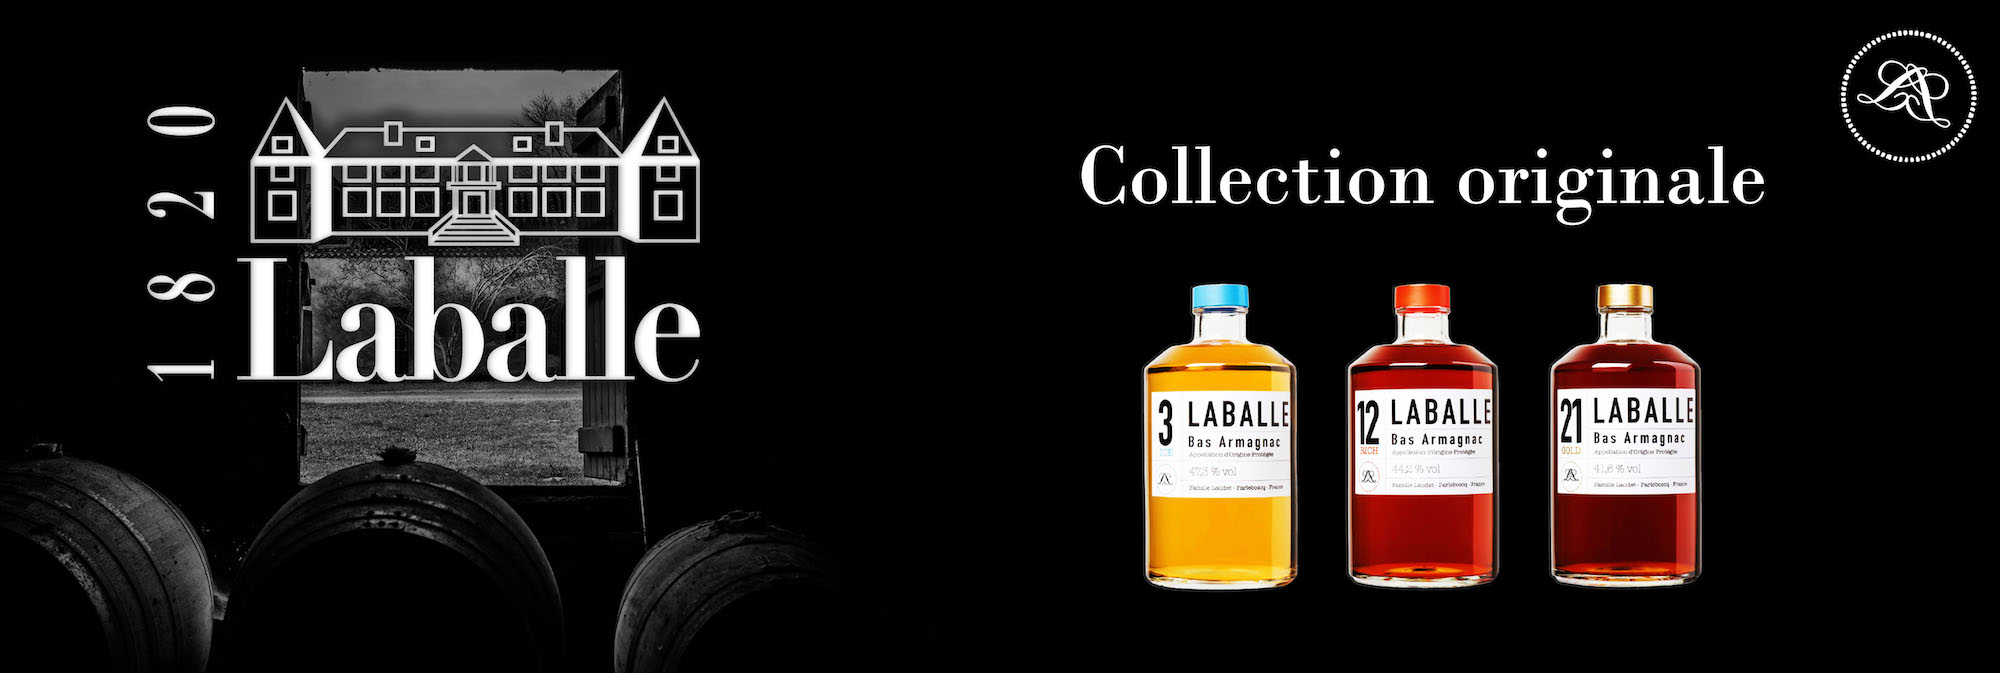 Collection Laballe 3-12-21